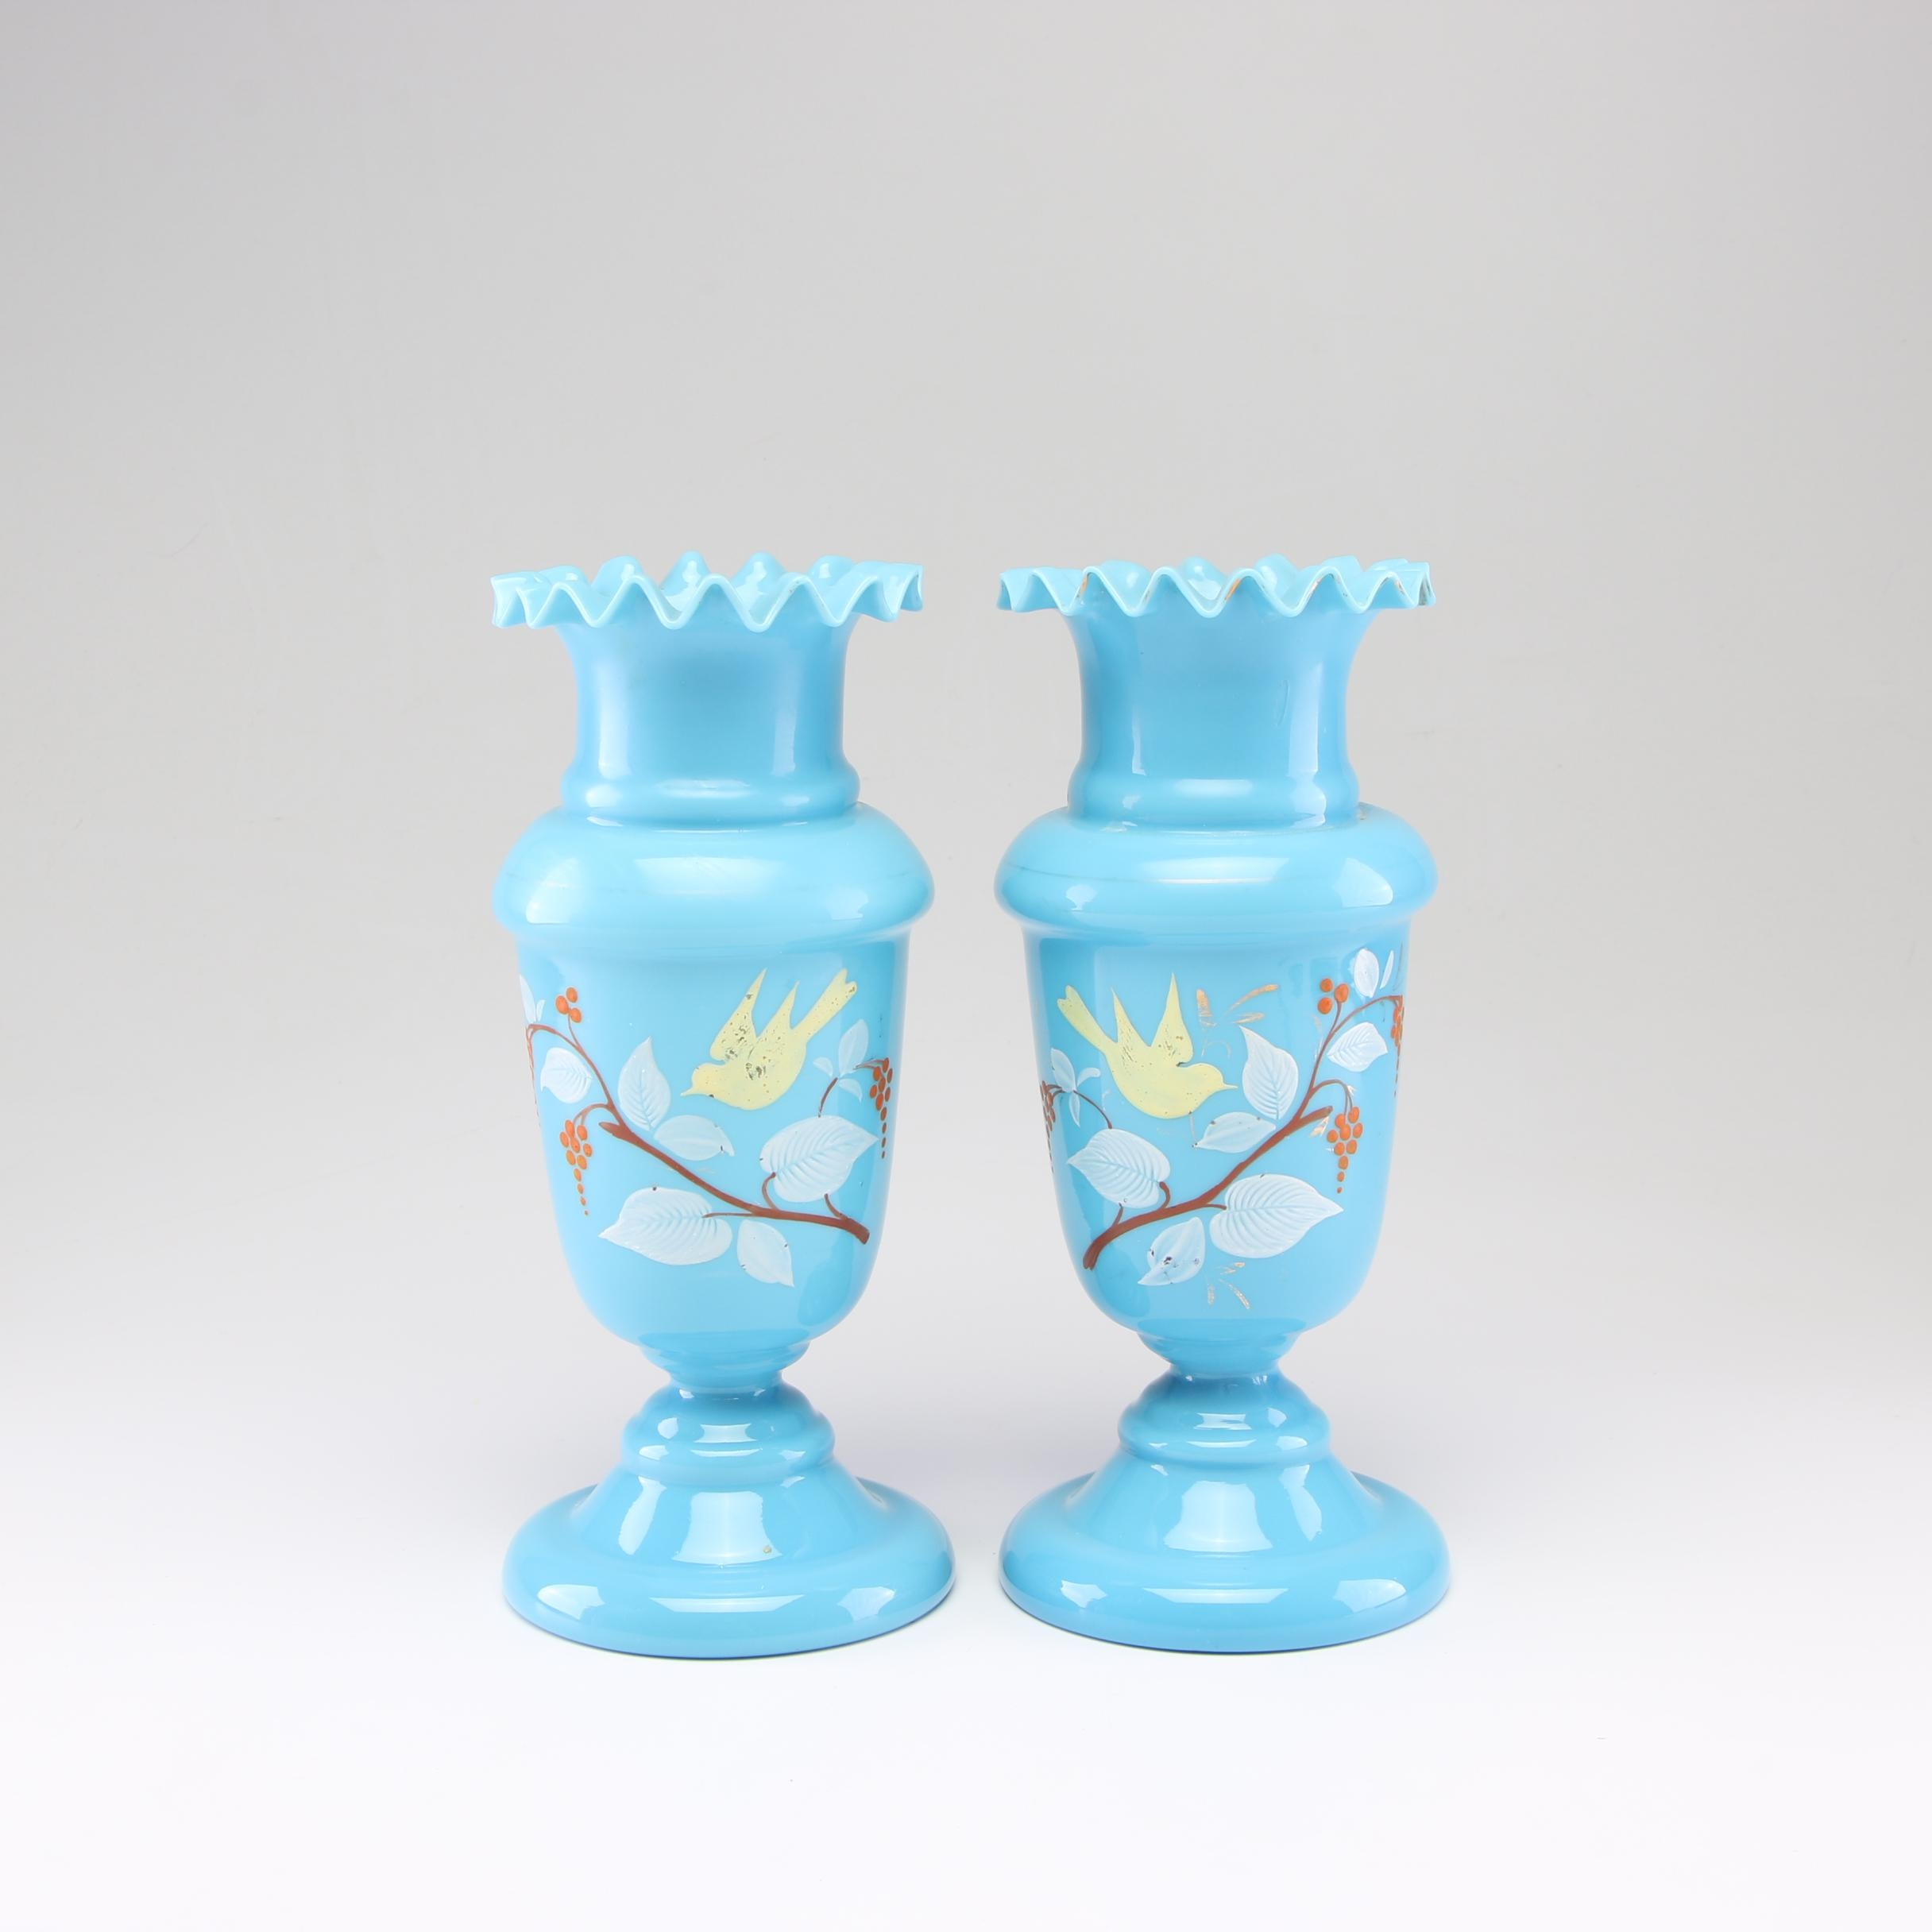 Bristol Blue Hand-Painted Vases, Late 19th/Early 20th Century